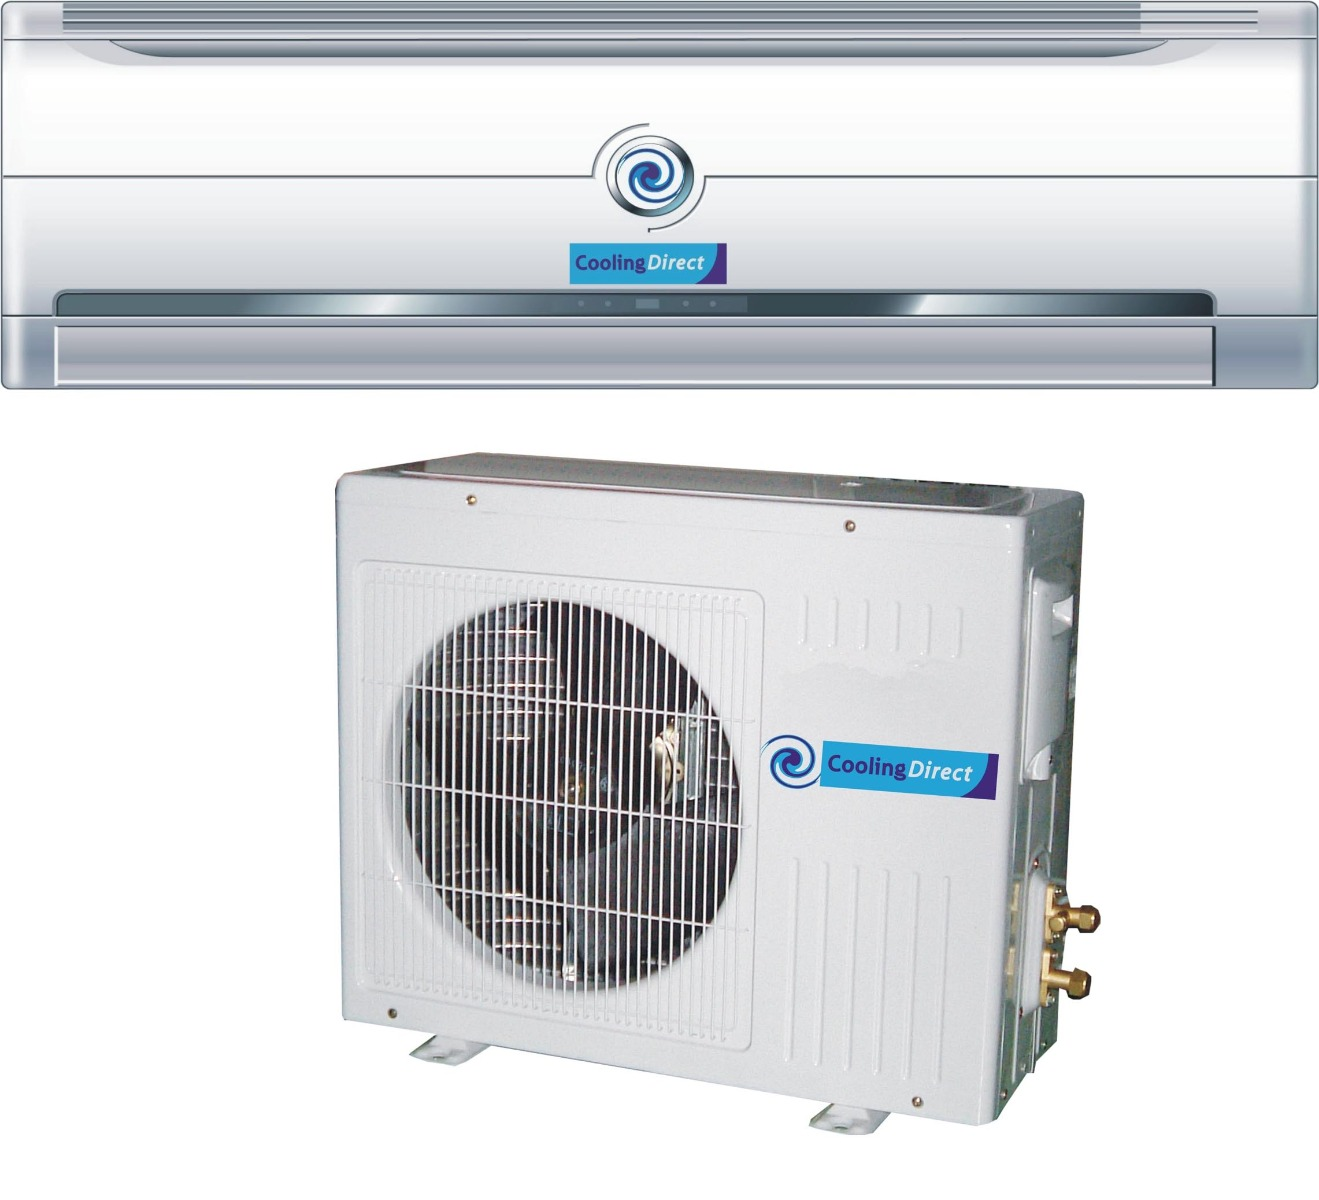 wall mounted split air conditioner, one of many air conditioning types